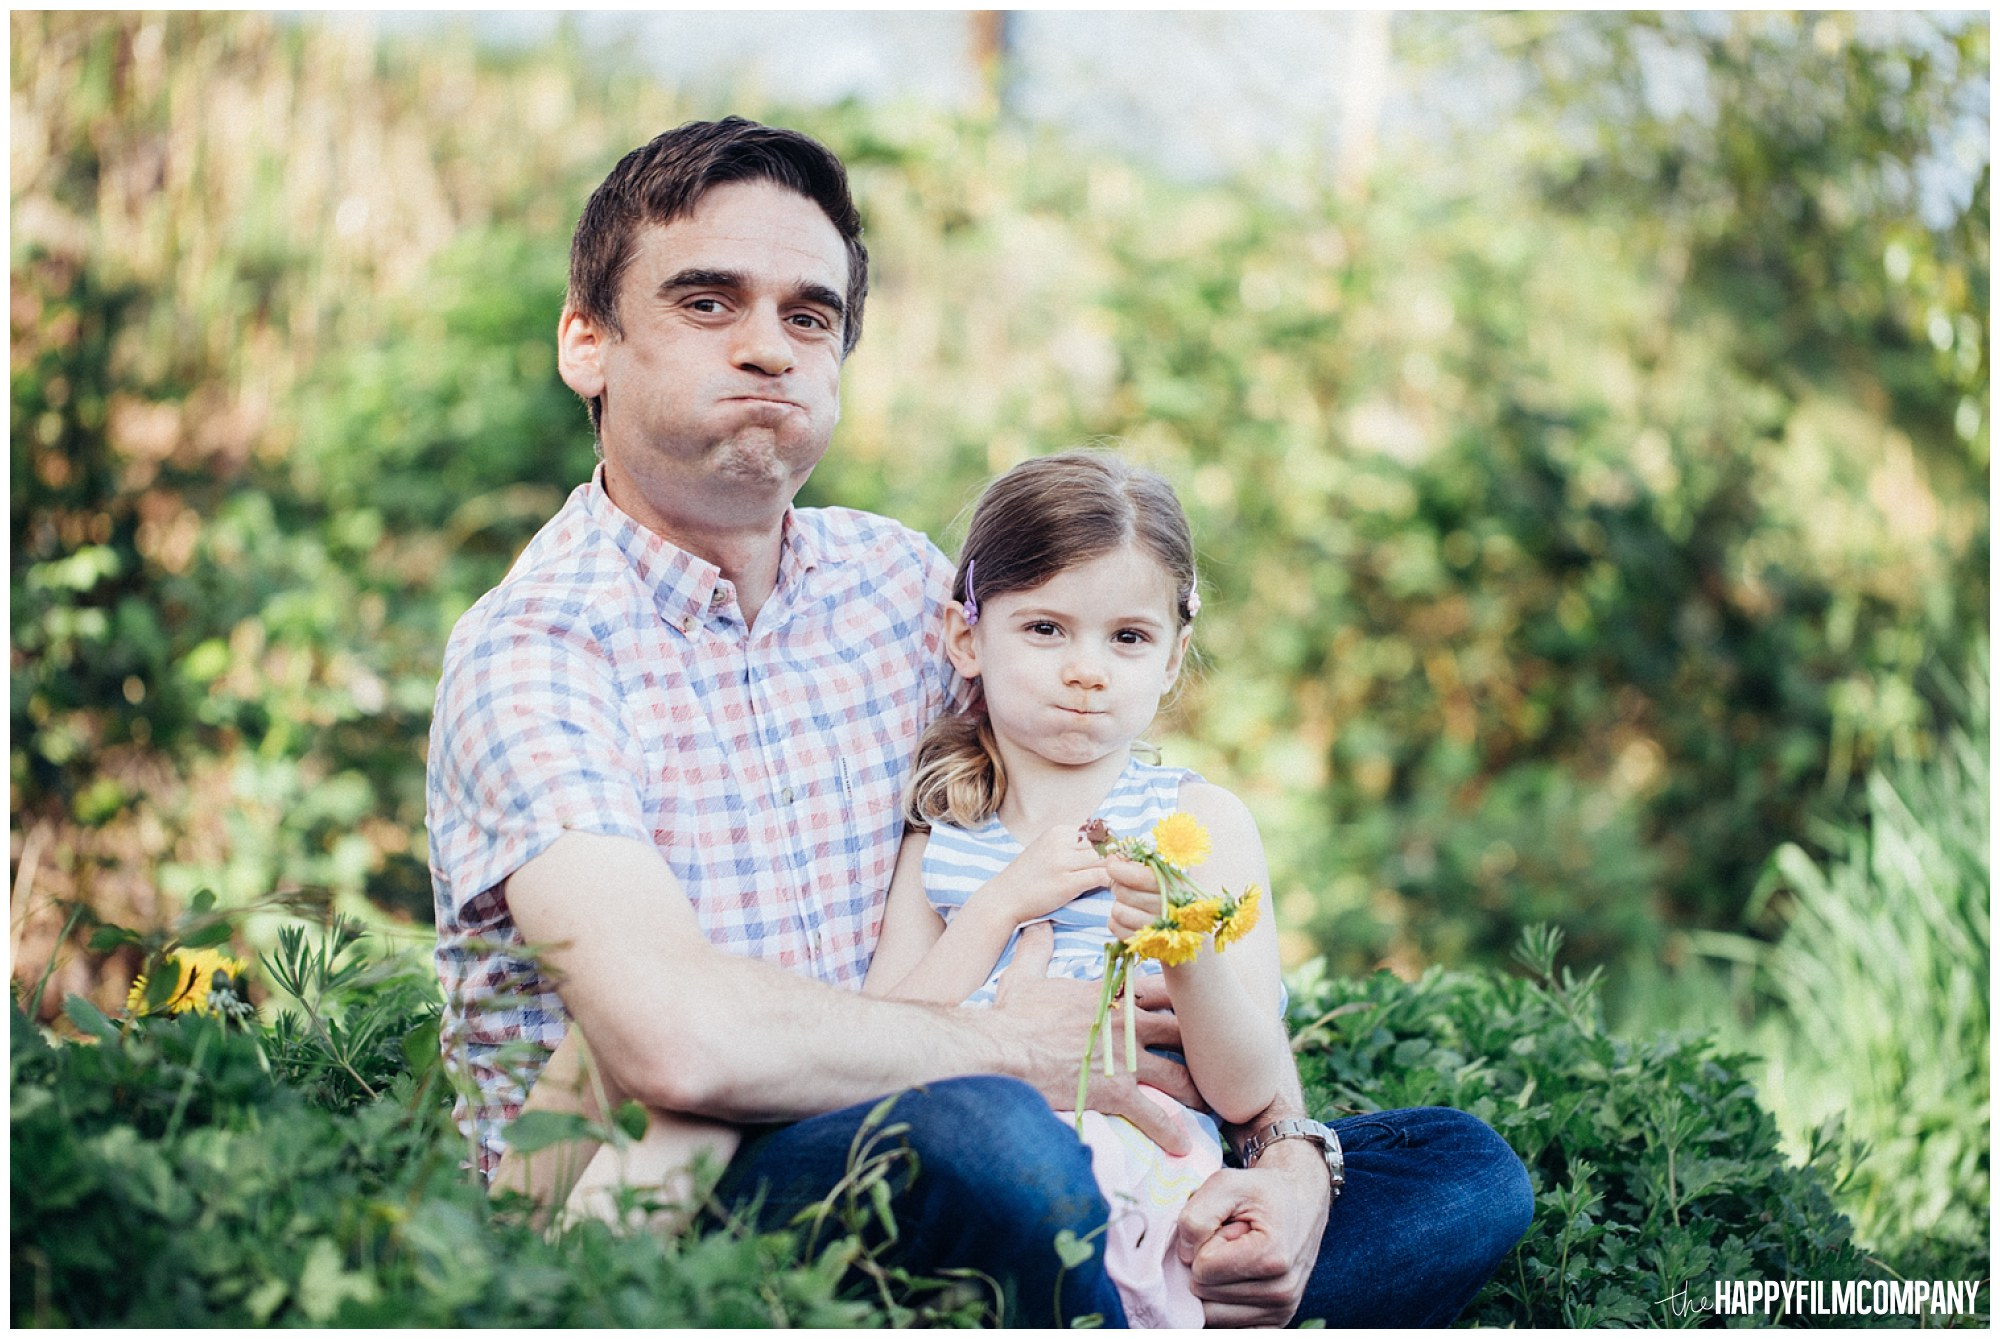 the Happy Film Company - Seattle Family Photography - Father Daughter Portraits - Redmond Grass Field Dandelion silly faces